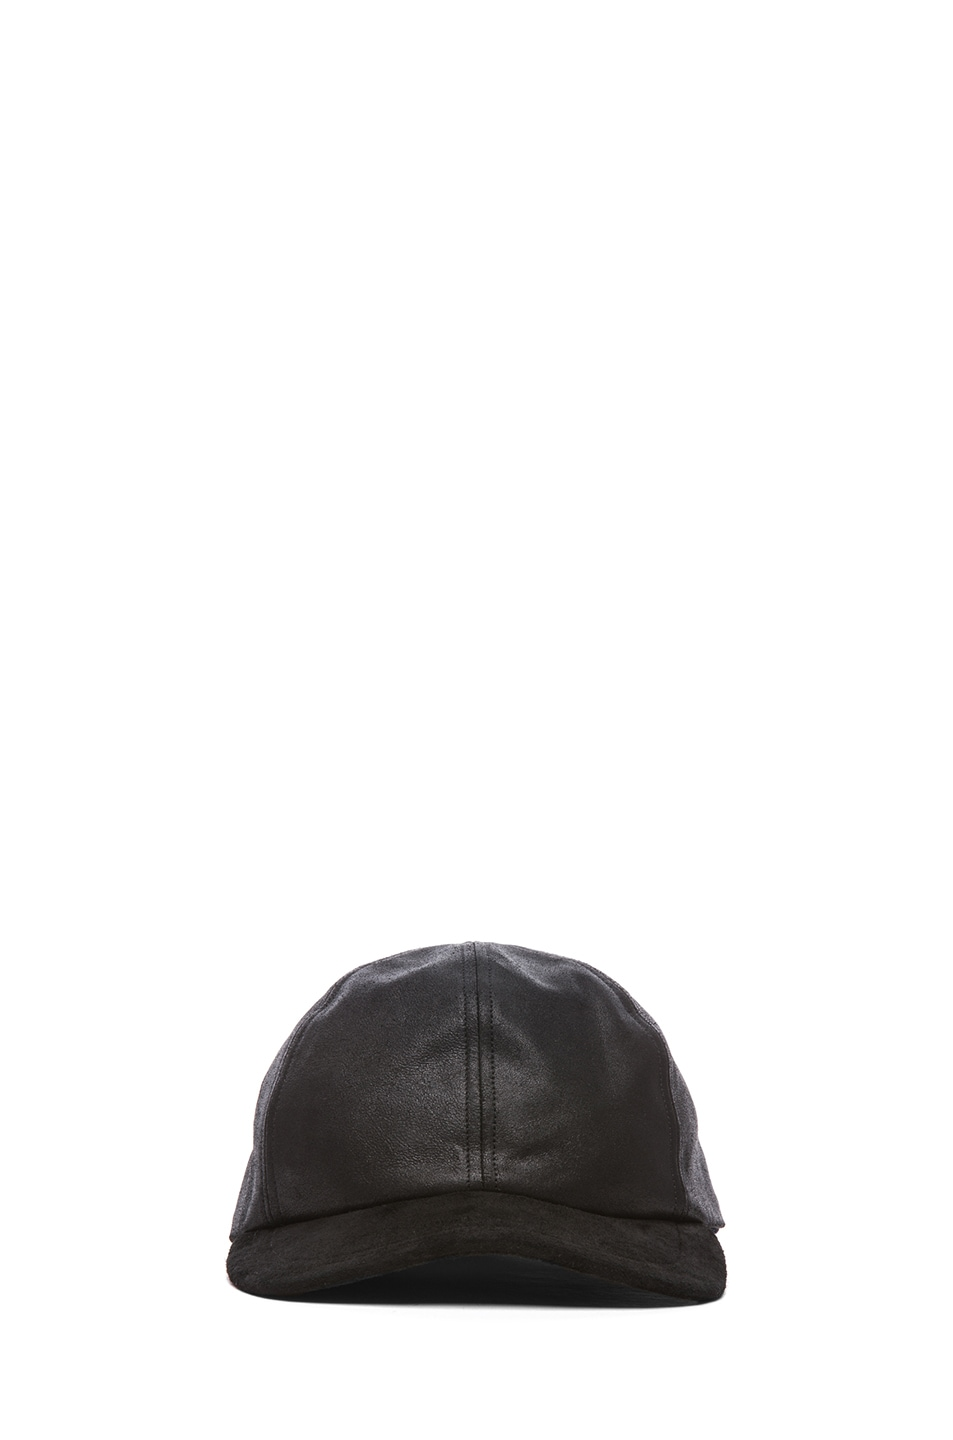 Image 1 of Eugenia Kim Darien Baseball Cap in Black